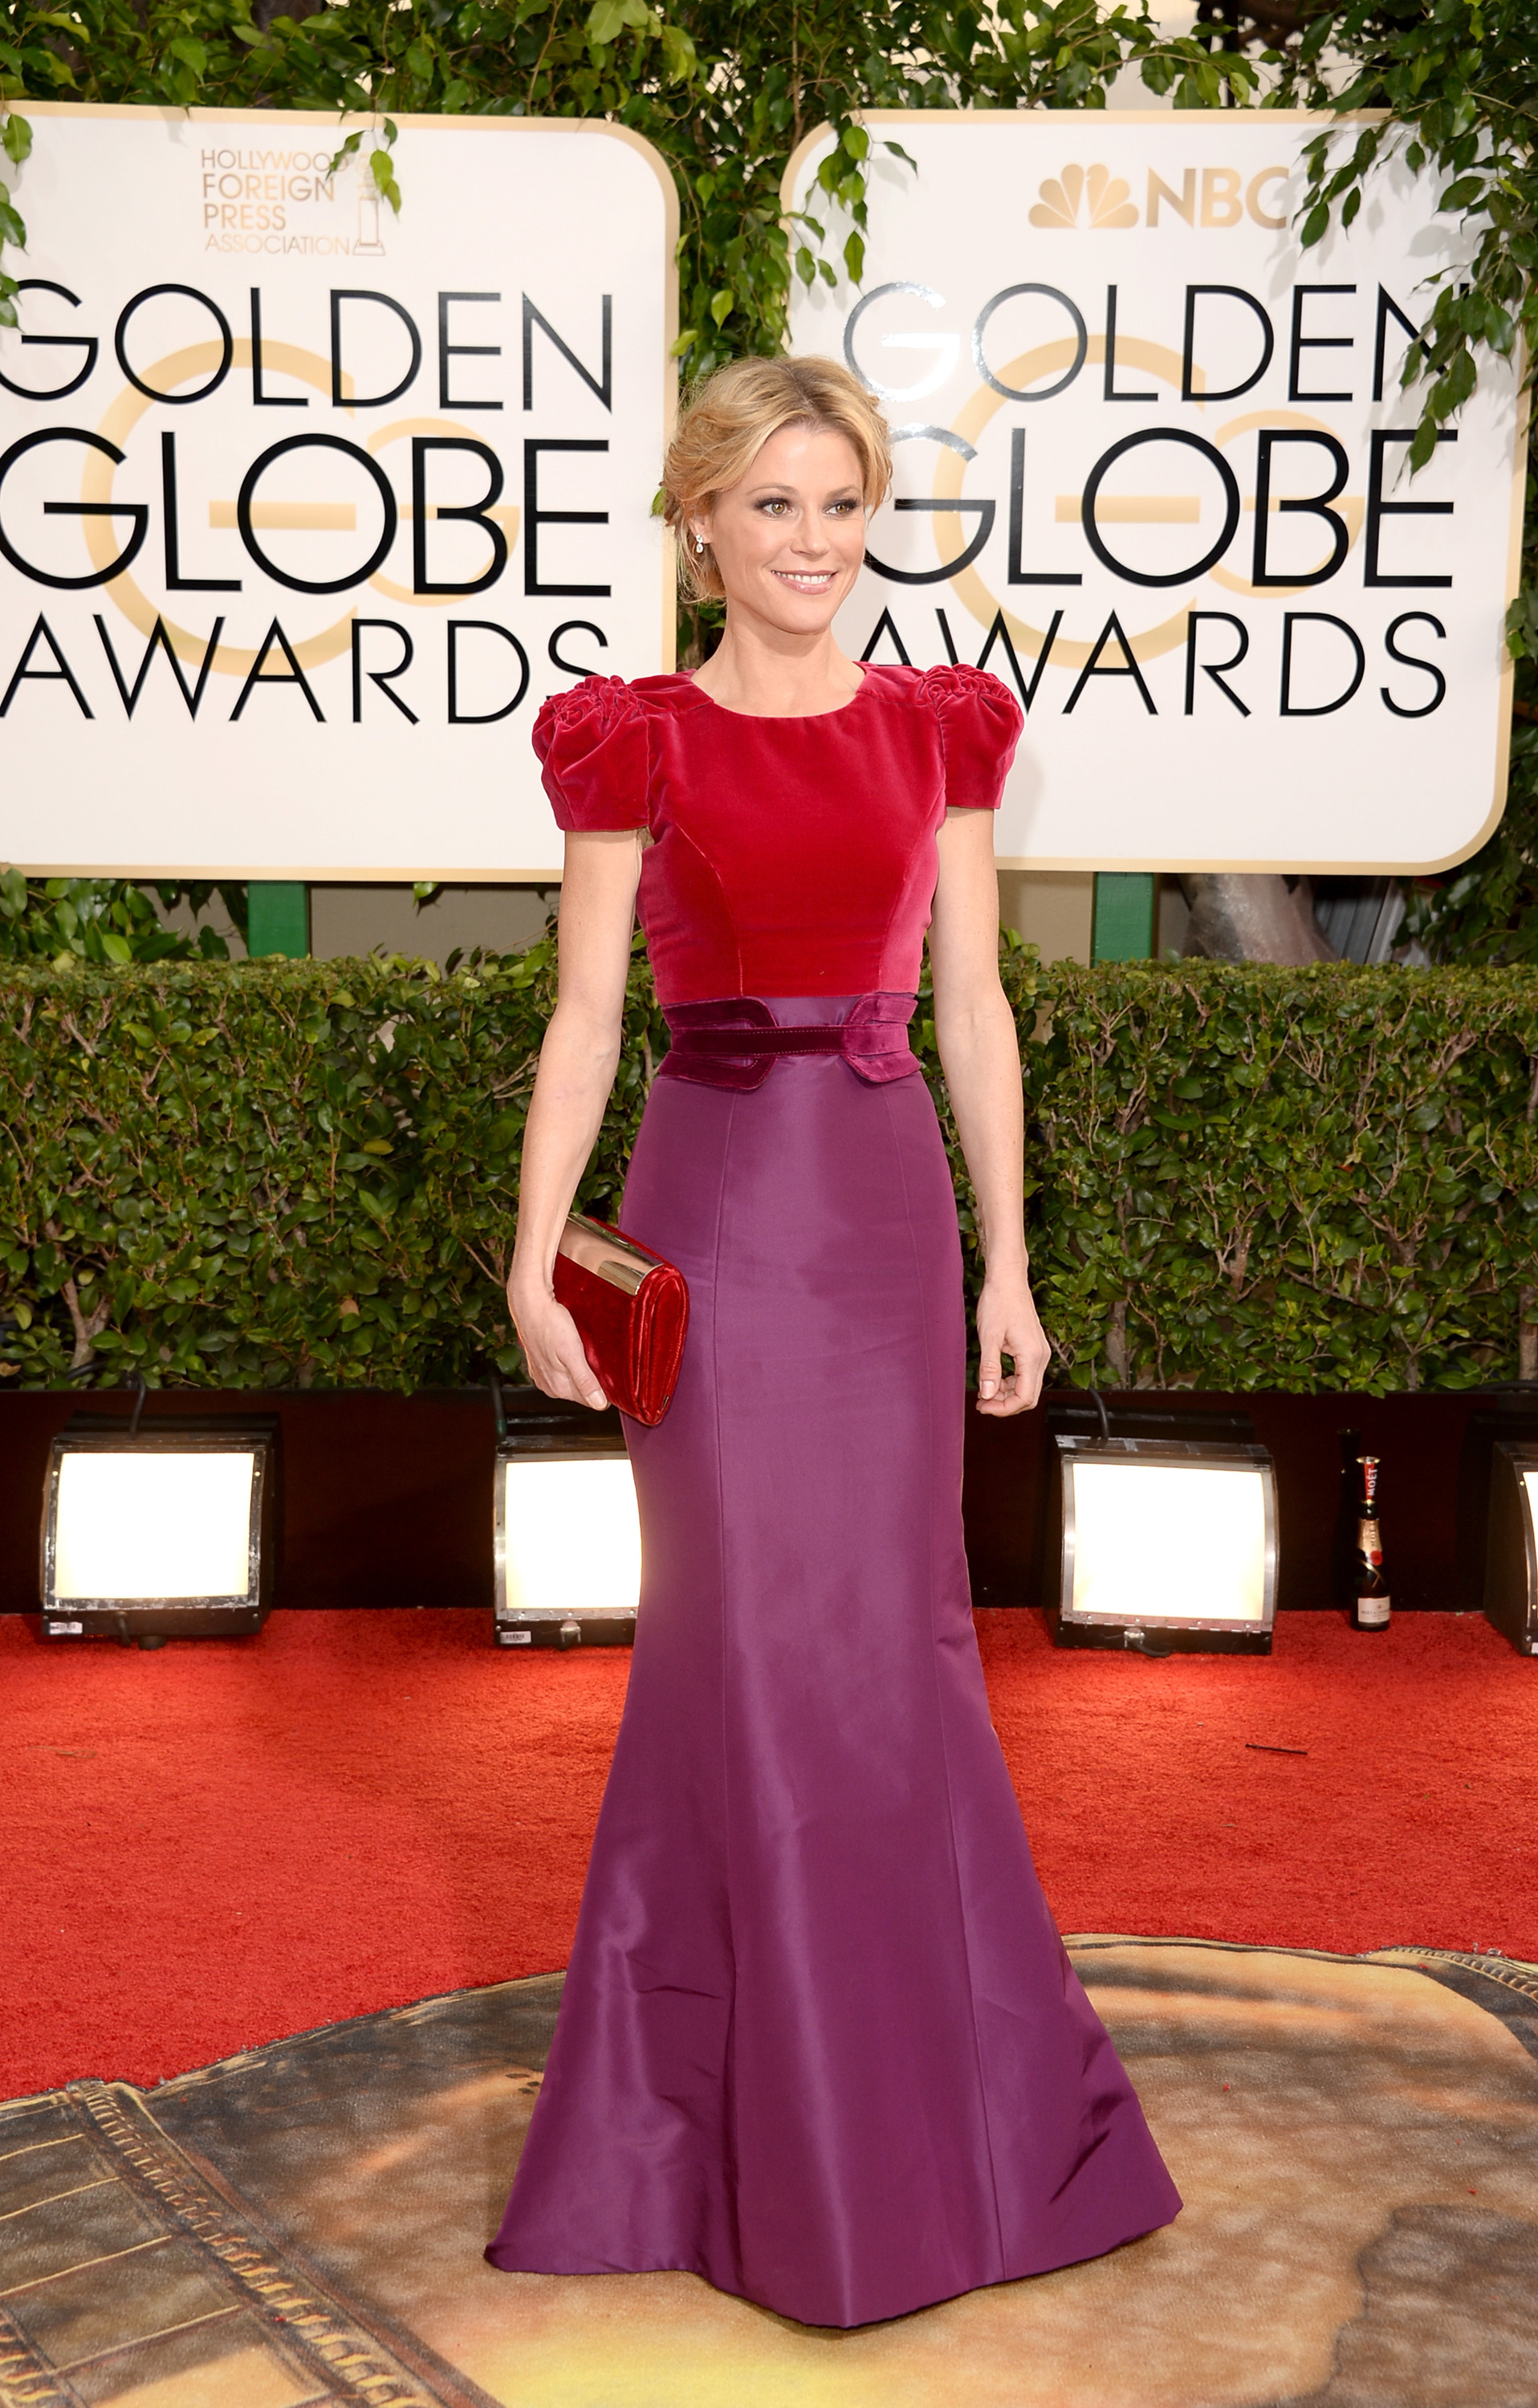 Purple And Red Work Surprisingly Well Together To Make Carolina Herrera S Dress Stand Out Among